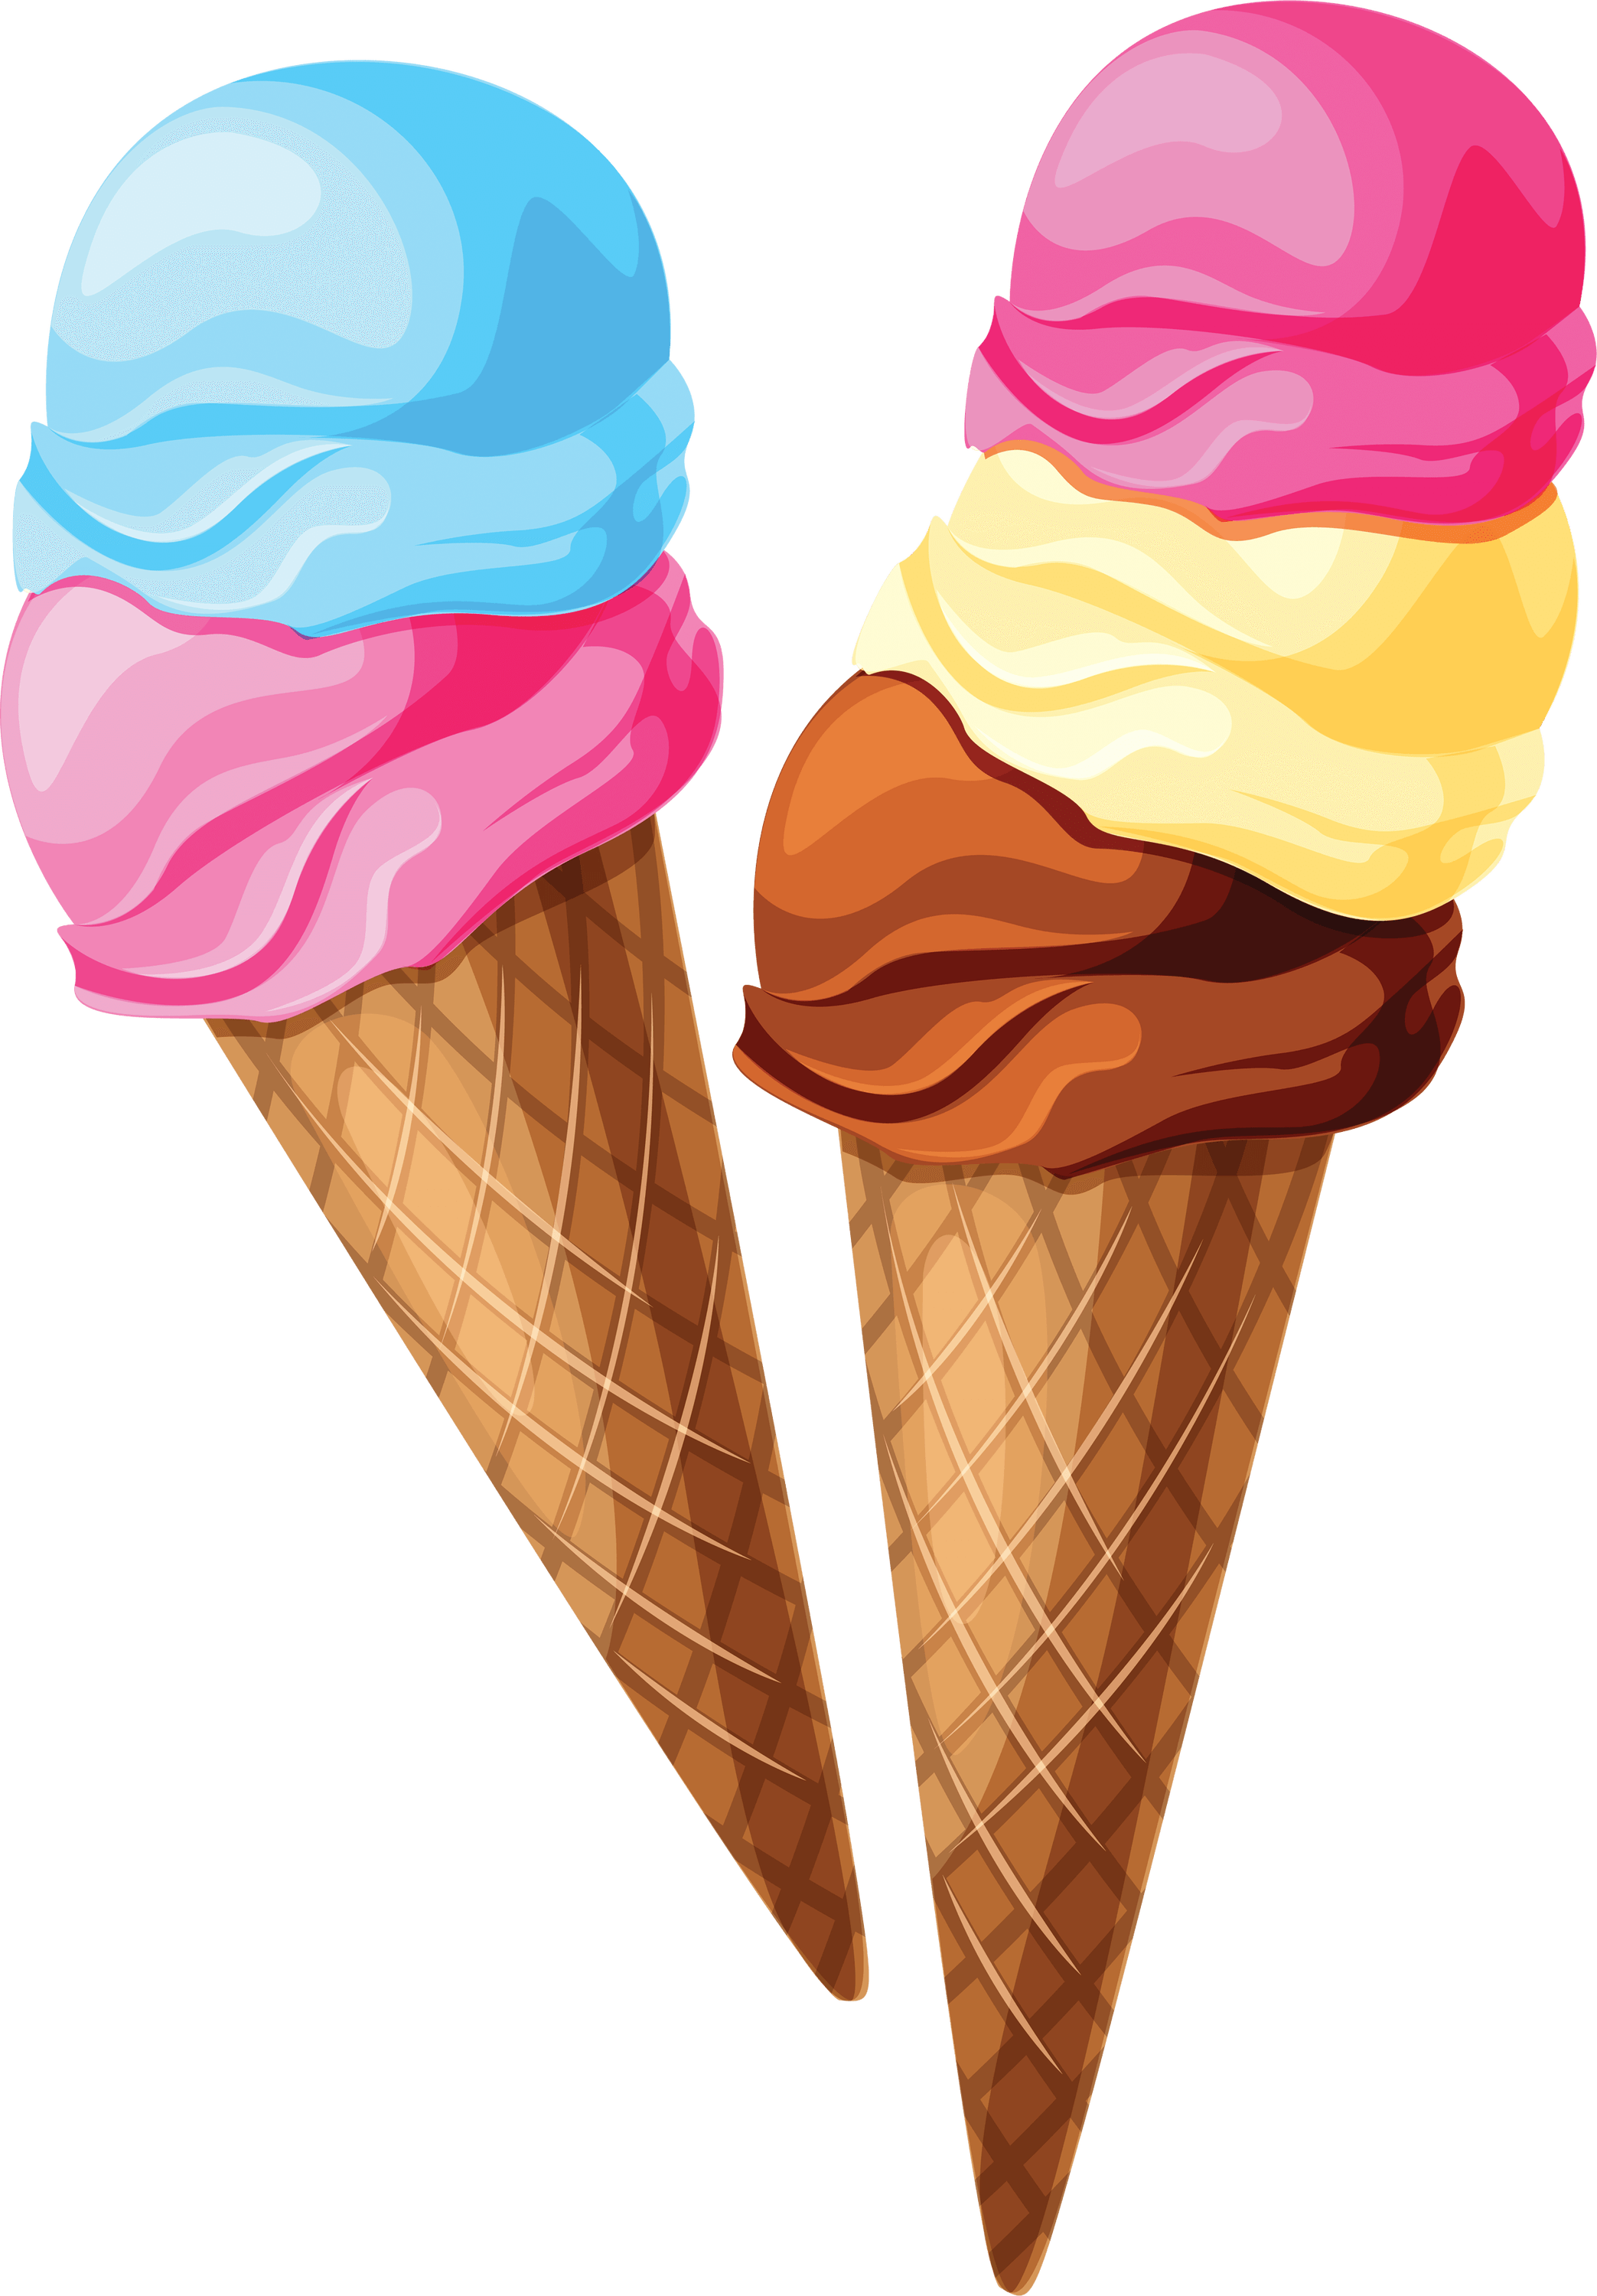 Cliparts Ice Cream - Ice Cream Background, Transparent background PNG HD thumbnail